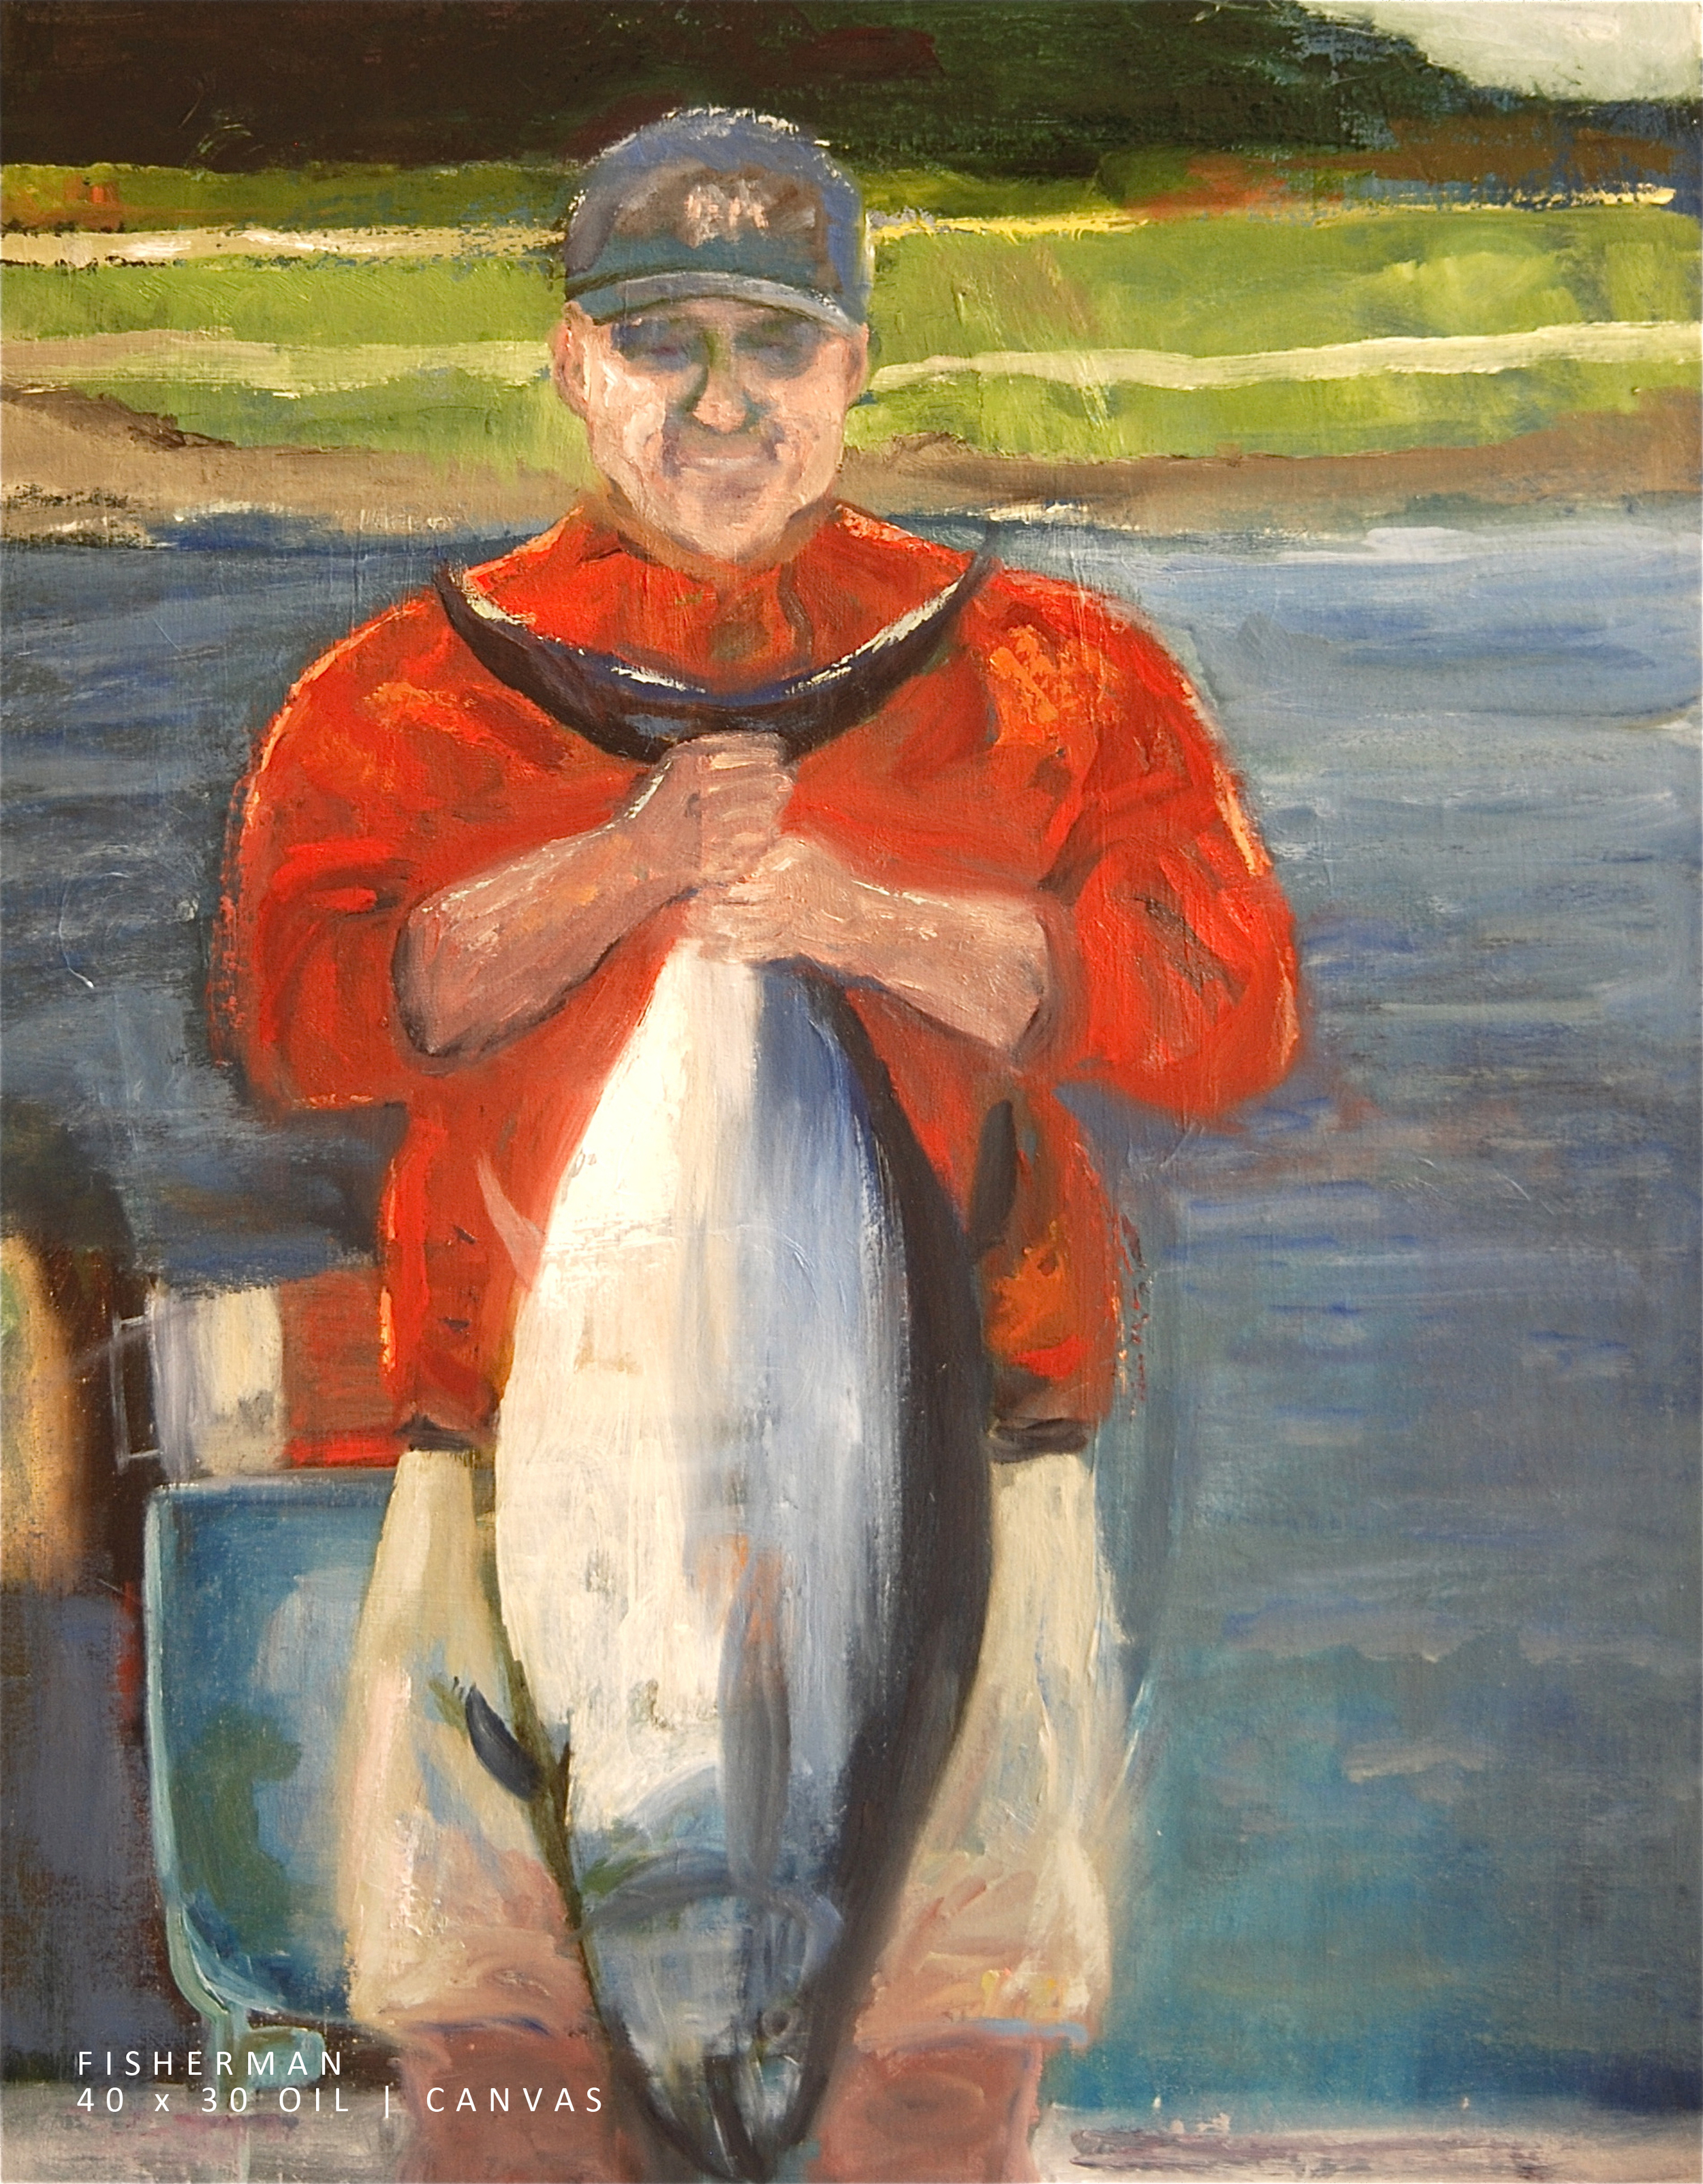 Fisherman 40x30 Oil-Canvas NEW.jpg